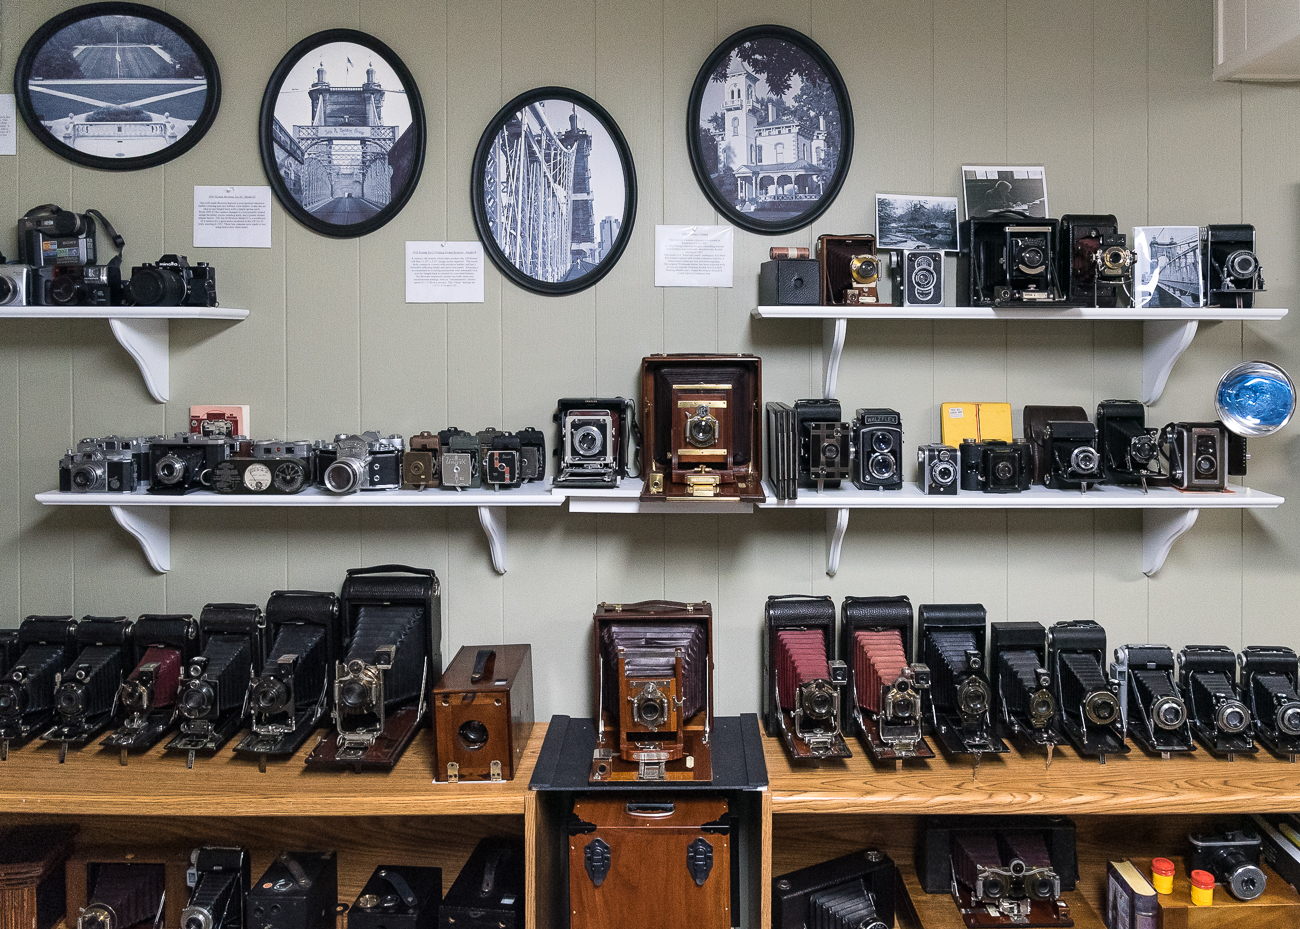 Tim Jeffries is a local photographer with over 45 years of experience using film and digital cameras. Inside his East Side home, he's amassed an impressive collection of around 175 vintage cameras that date from 1896 to 1980. The collection has been built over the course of five years and is largely funded by Tim's part time gig shooting weddings. / Image: Phil Armstrong, Cincinnati Refined // Published: 2.25.19